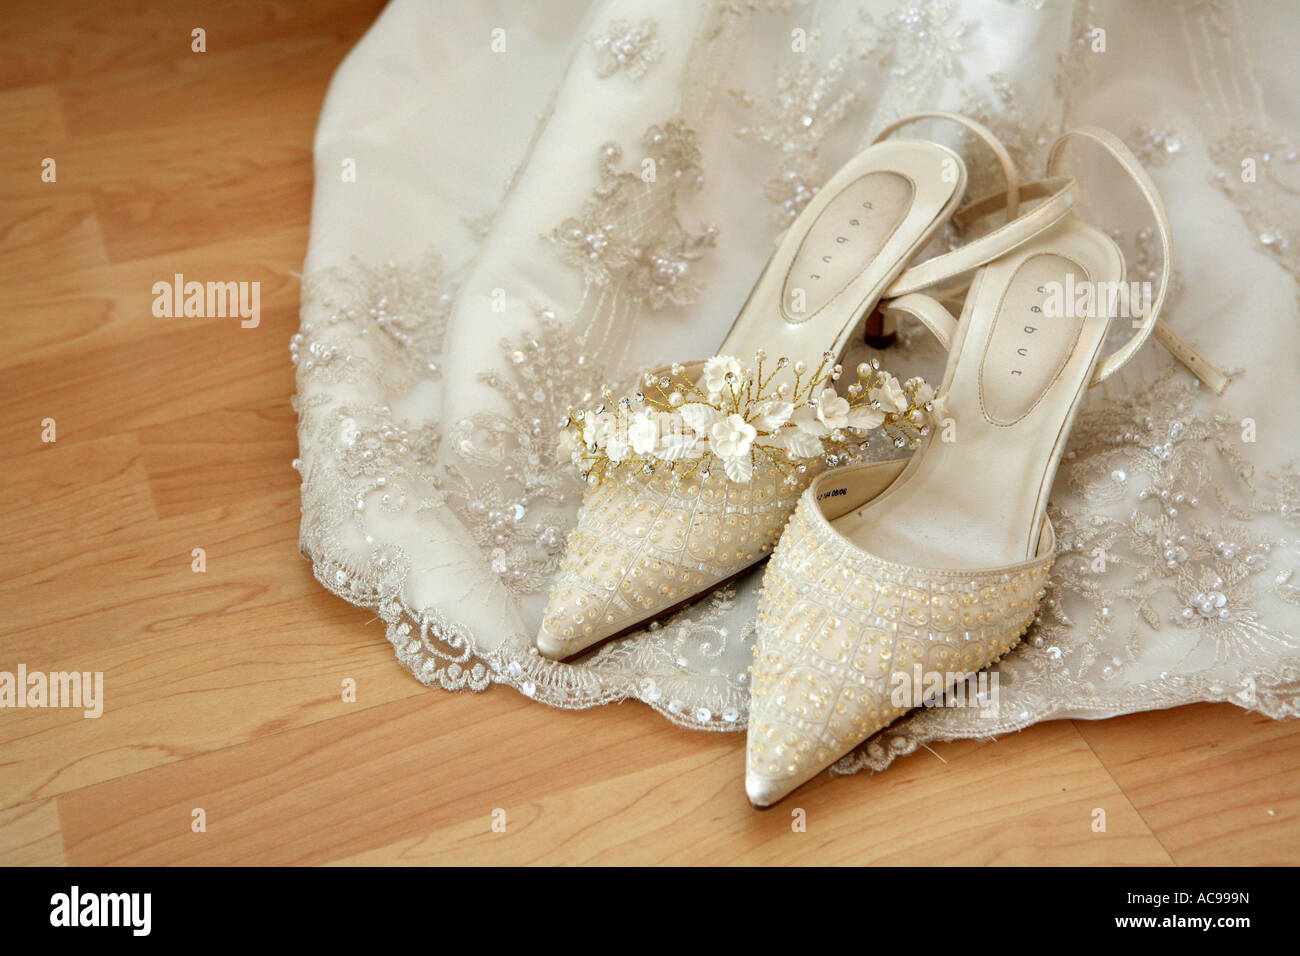 Expensive bridal wedding shoes resting